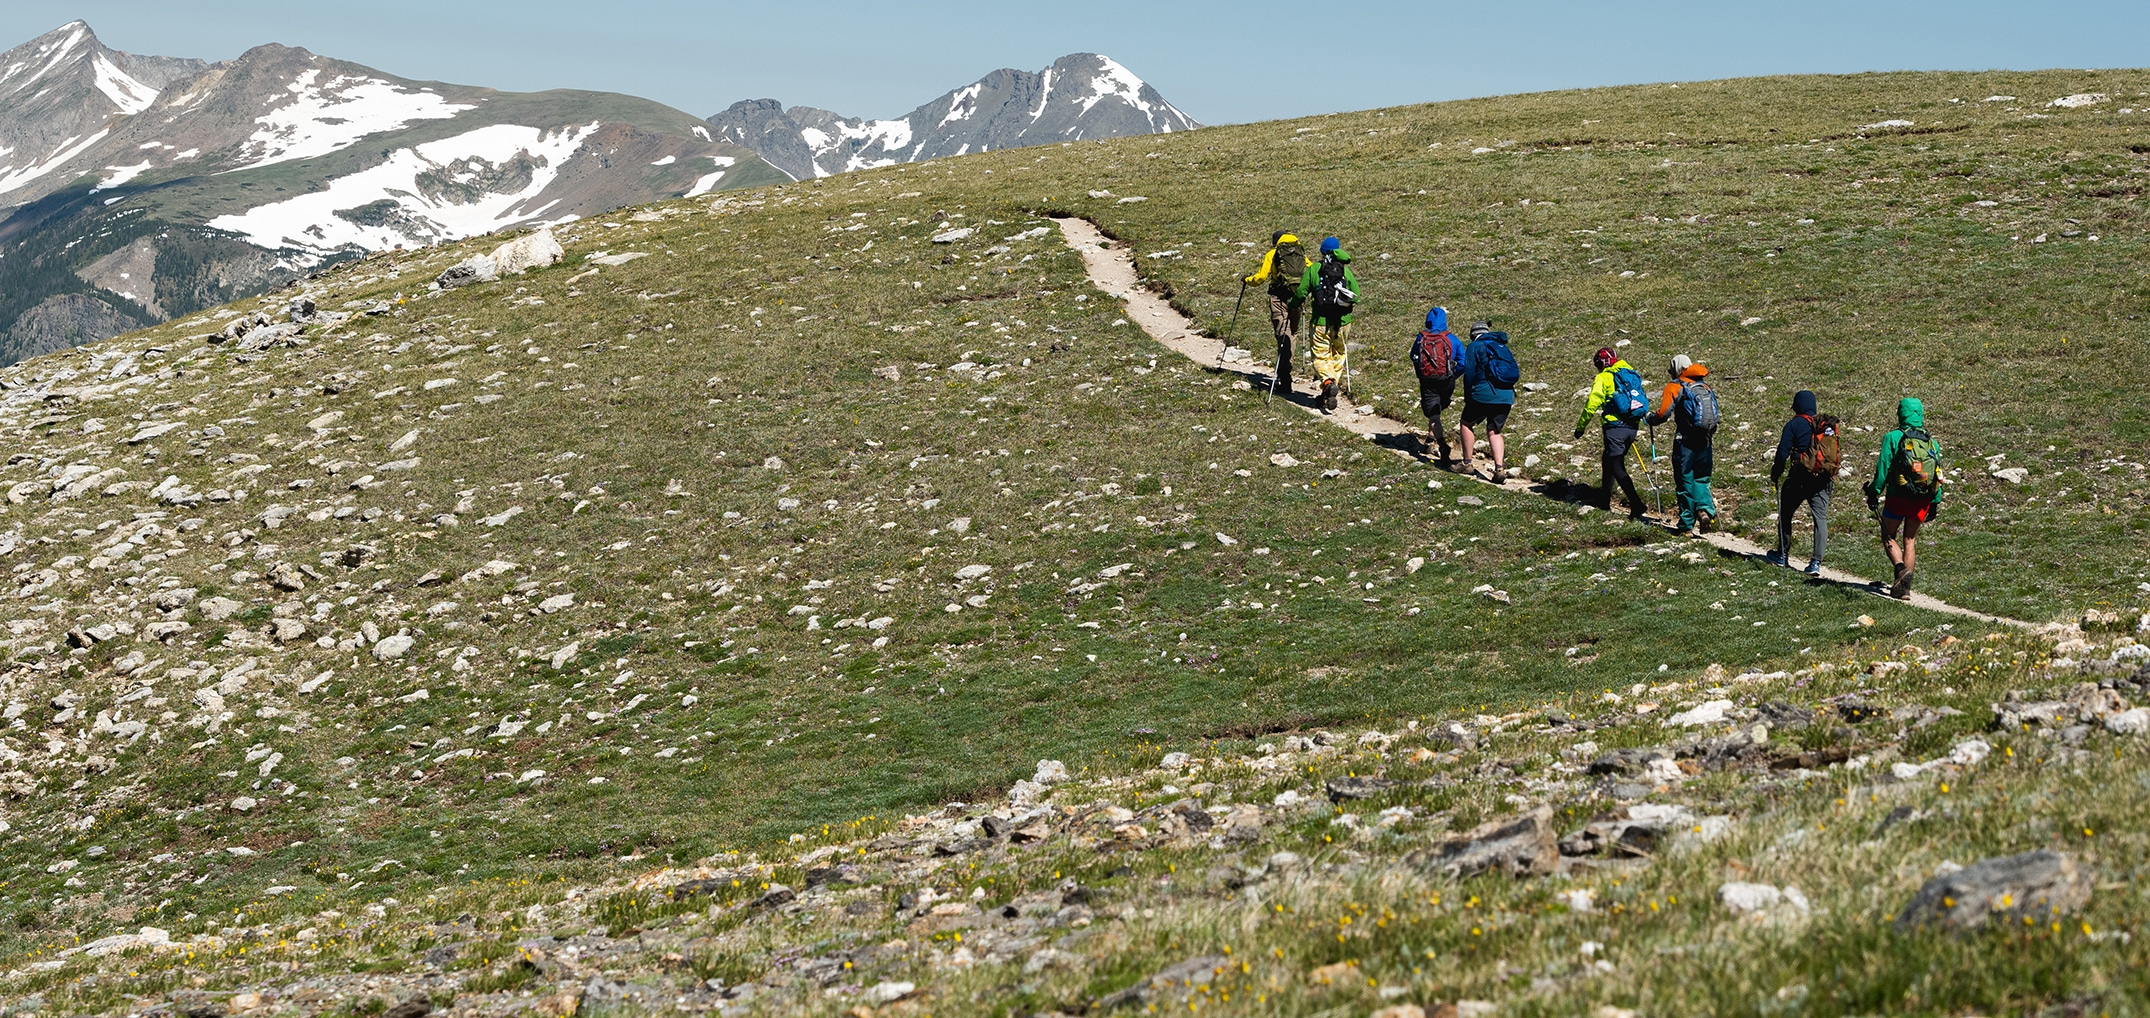 8 hikers with colorful packs and poles walk along a dirt narrow path on a grassy hill towards snowcapped mountains.